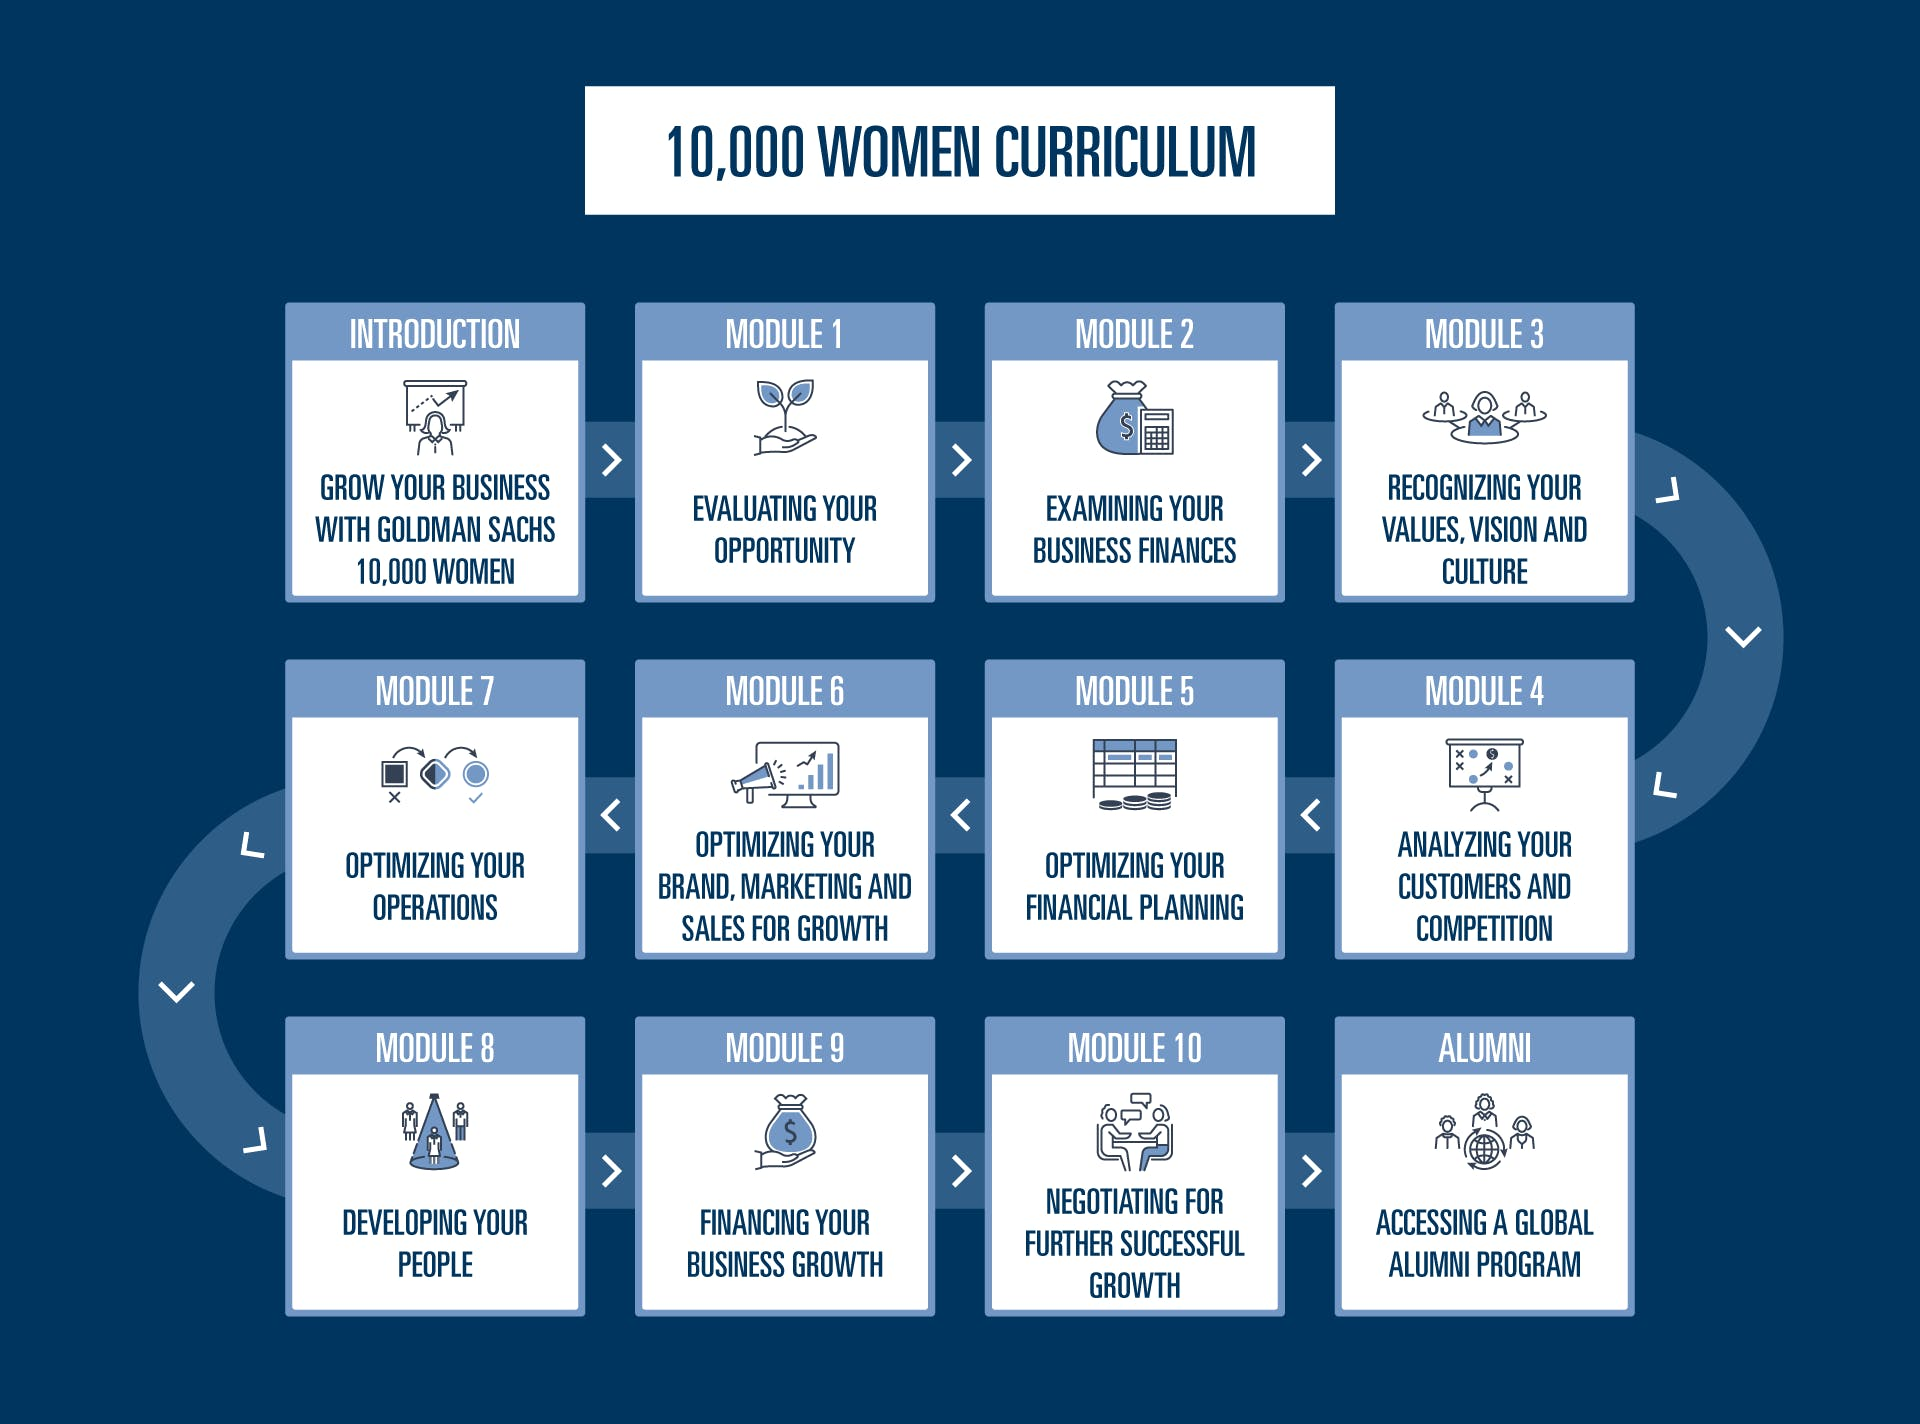 10,000 Women Curriculum